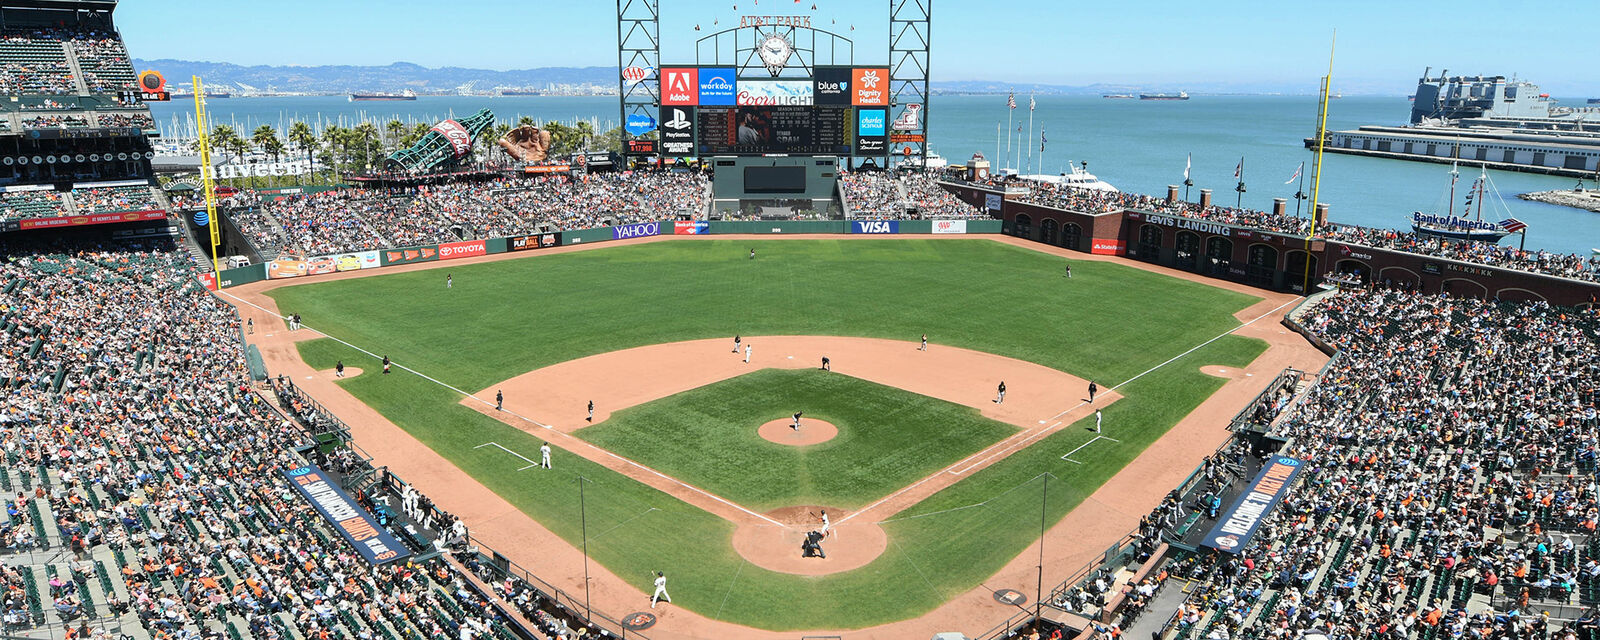 Colorado Rockies at San Francisco Giants Tickets (Say Hey Tuesdays – 2 for 1 Giant Dogs till 7th Inning)